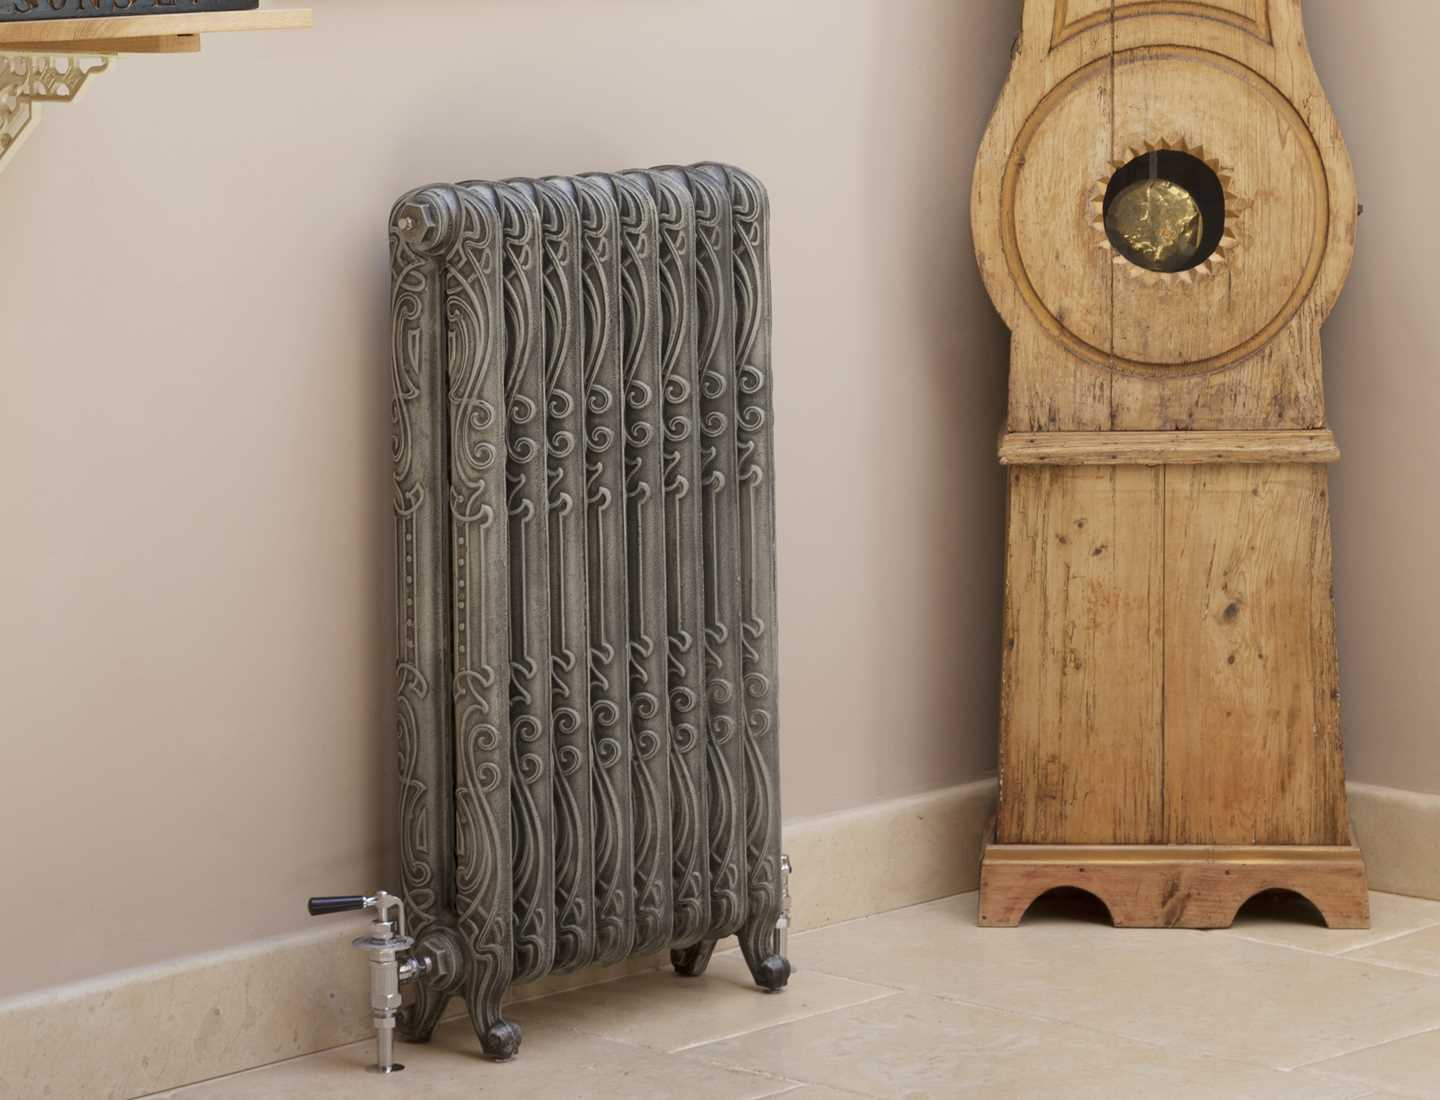 Jazz radiator finished in antiqued french grey paint